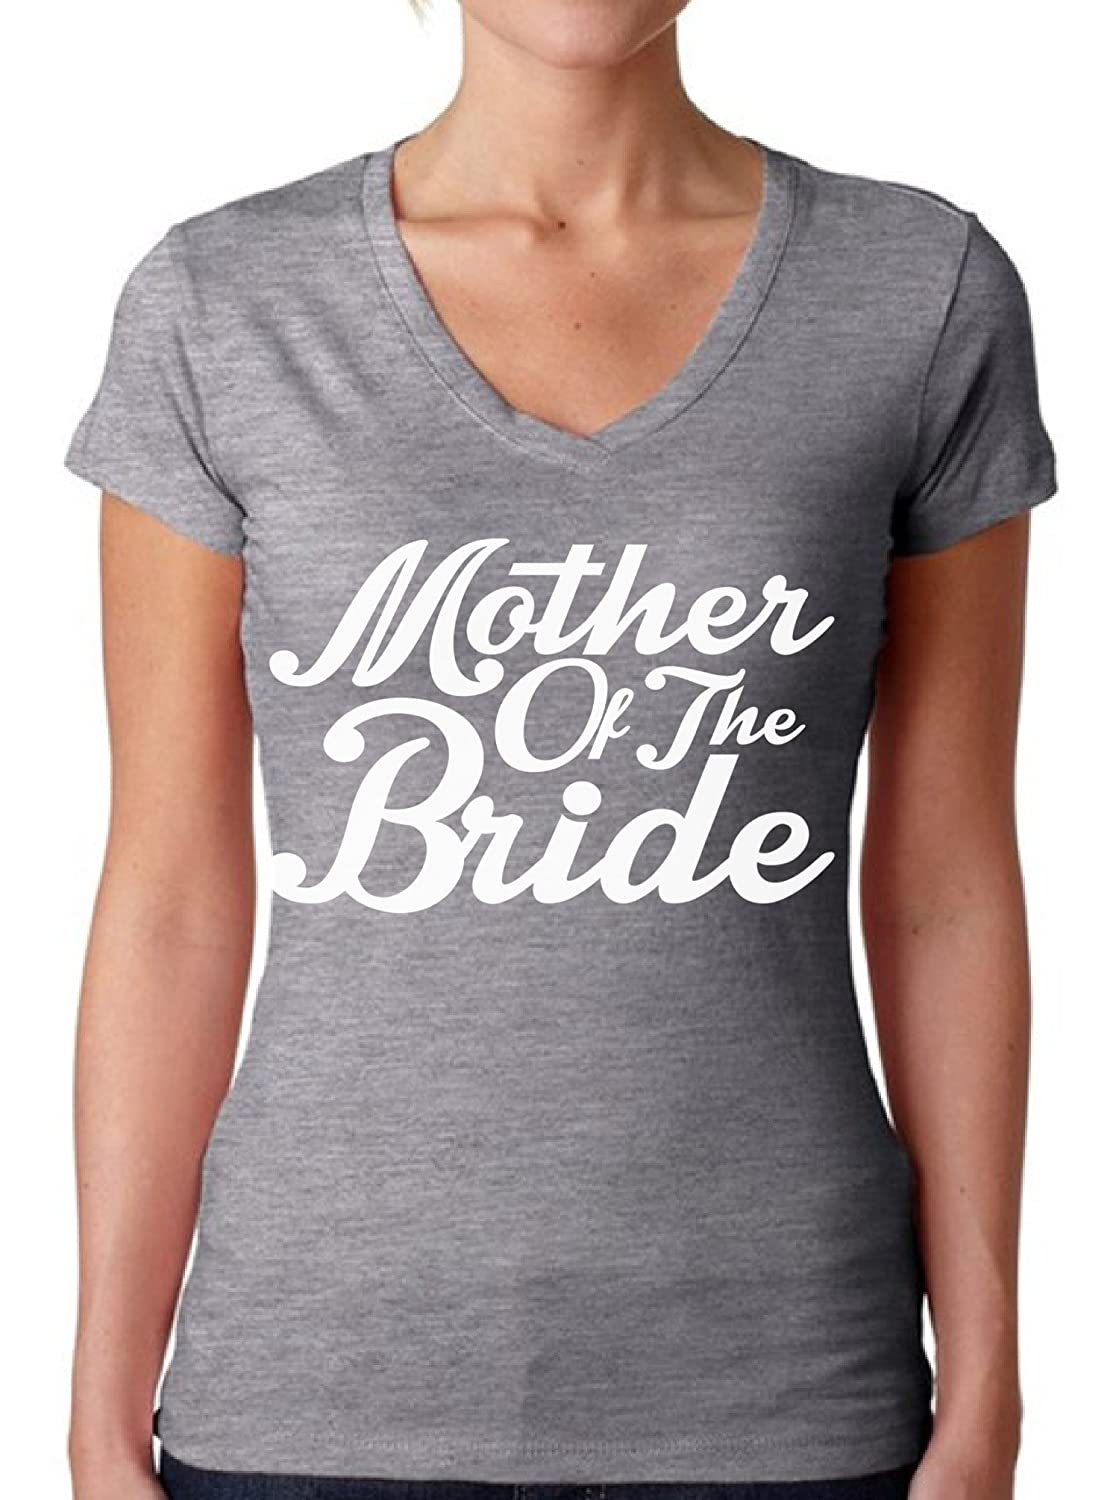 Awkwardstyles Women's Mother of The Bride V-Neck T-Shirt W Tee Shirt + Bookmark-ANZ